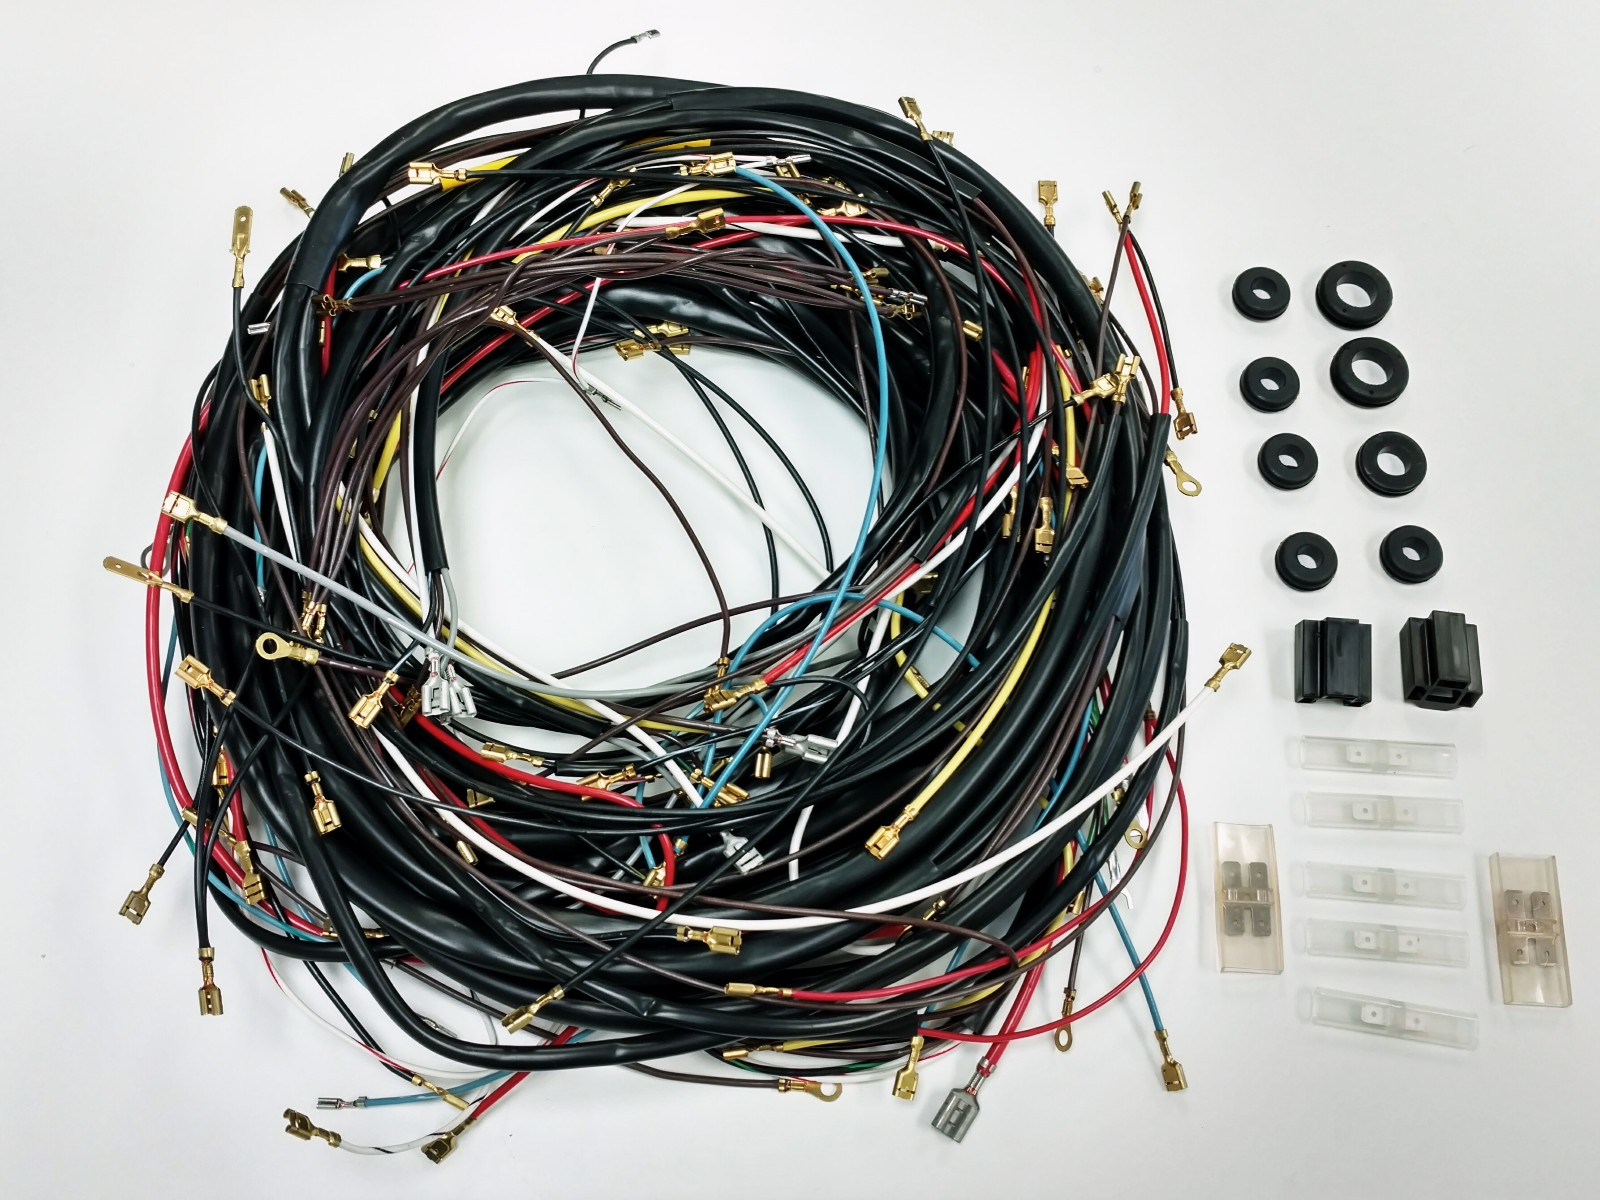 hight resolution of  1968 1969 all karmann ghia vw complete wiring works wire harness kit usa made